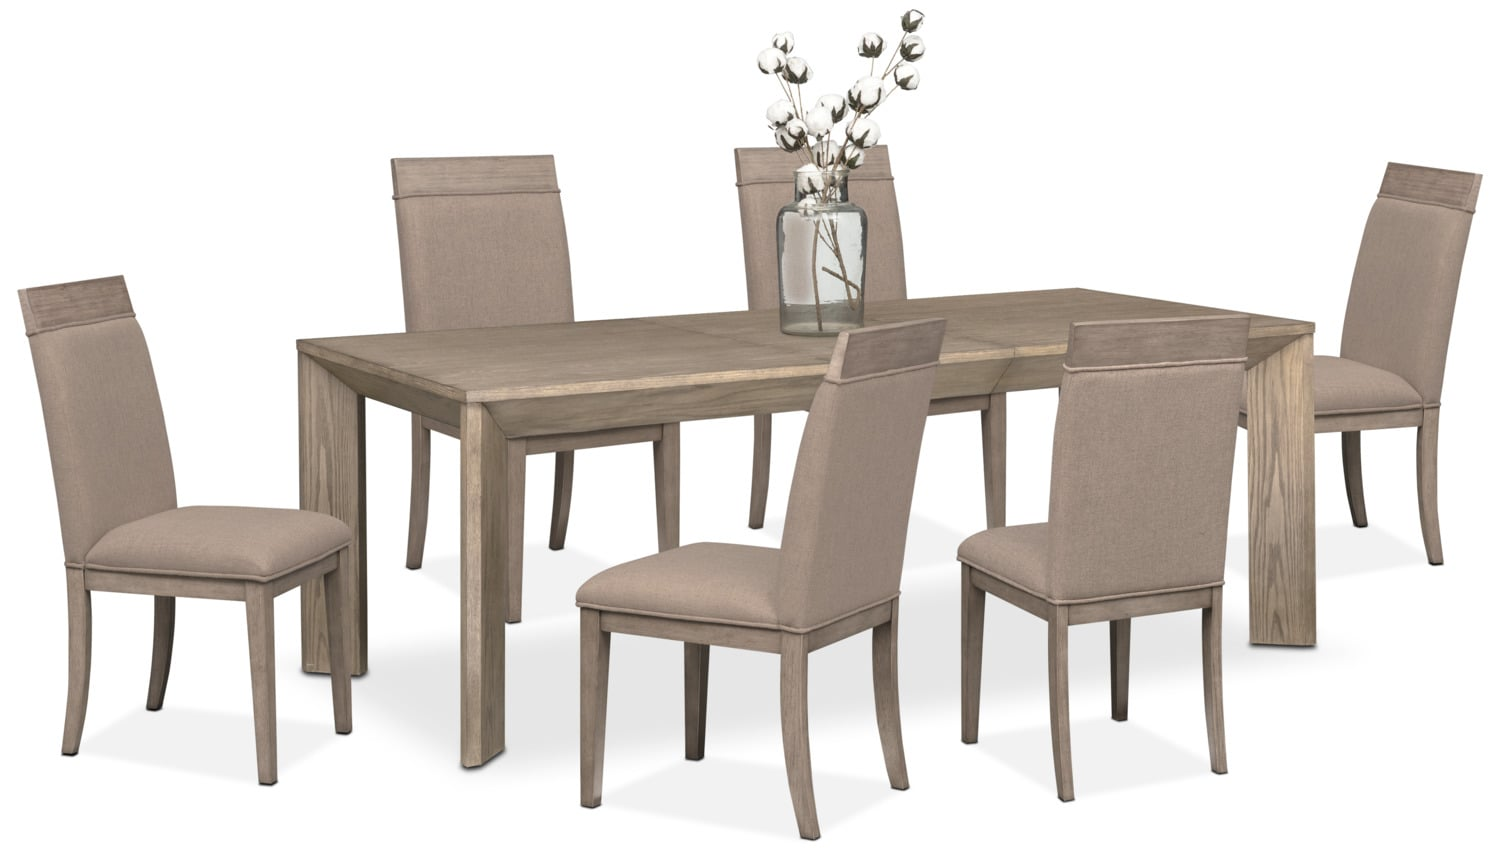 Delightful Gavin Table And 6 Side Chairs   Graystone